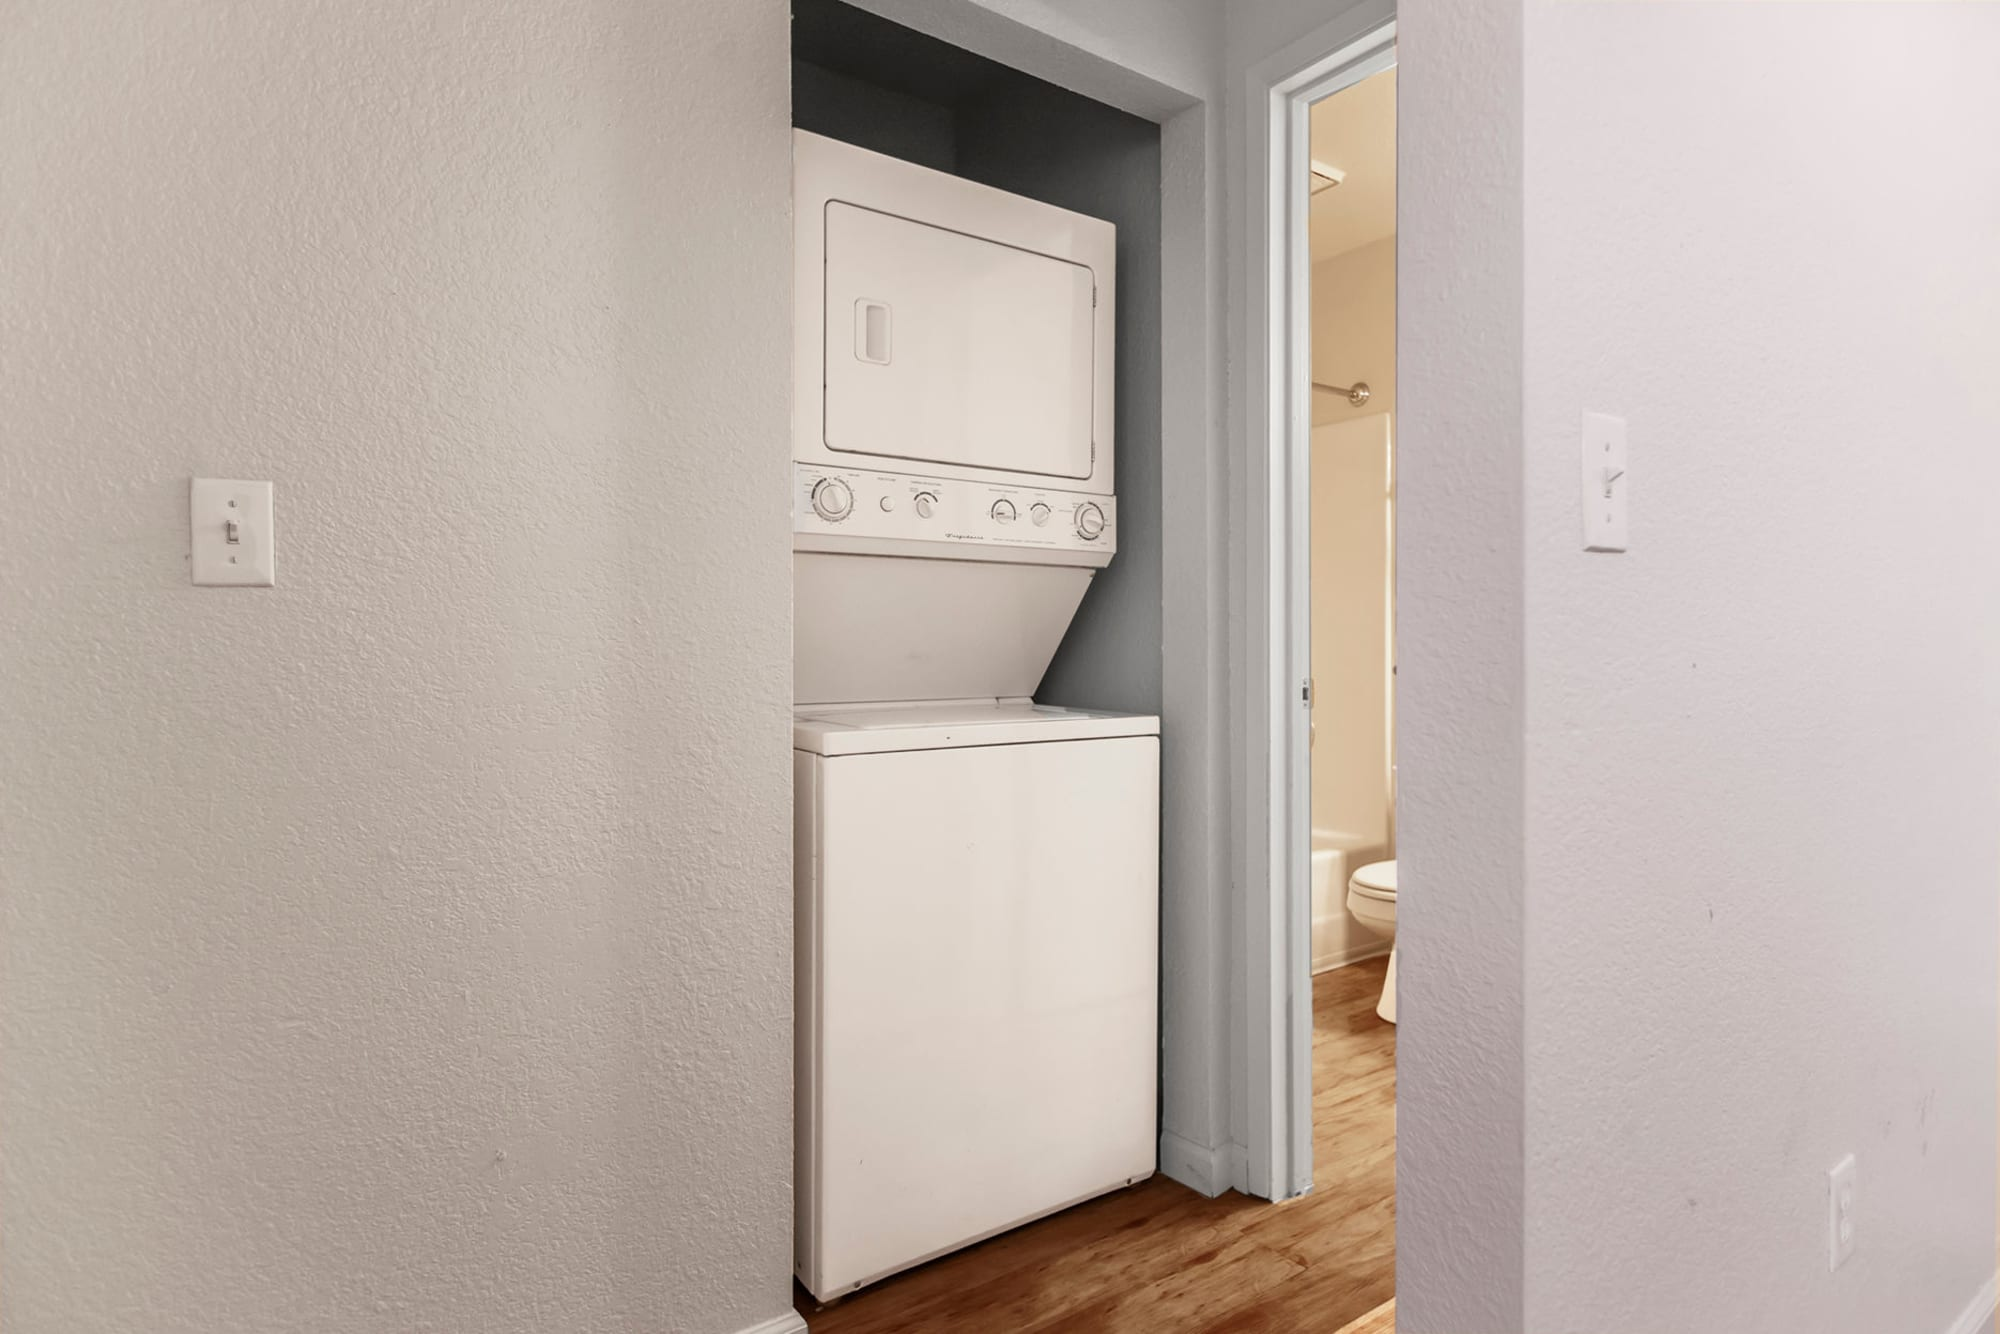 Washer and dryer stack-able at Sommerset Apartments in Vacaville, CA